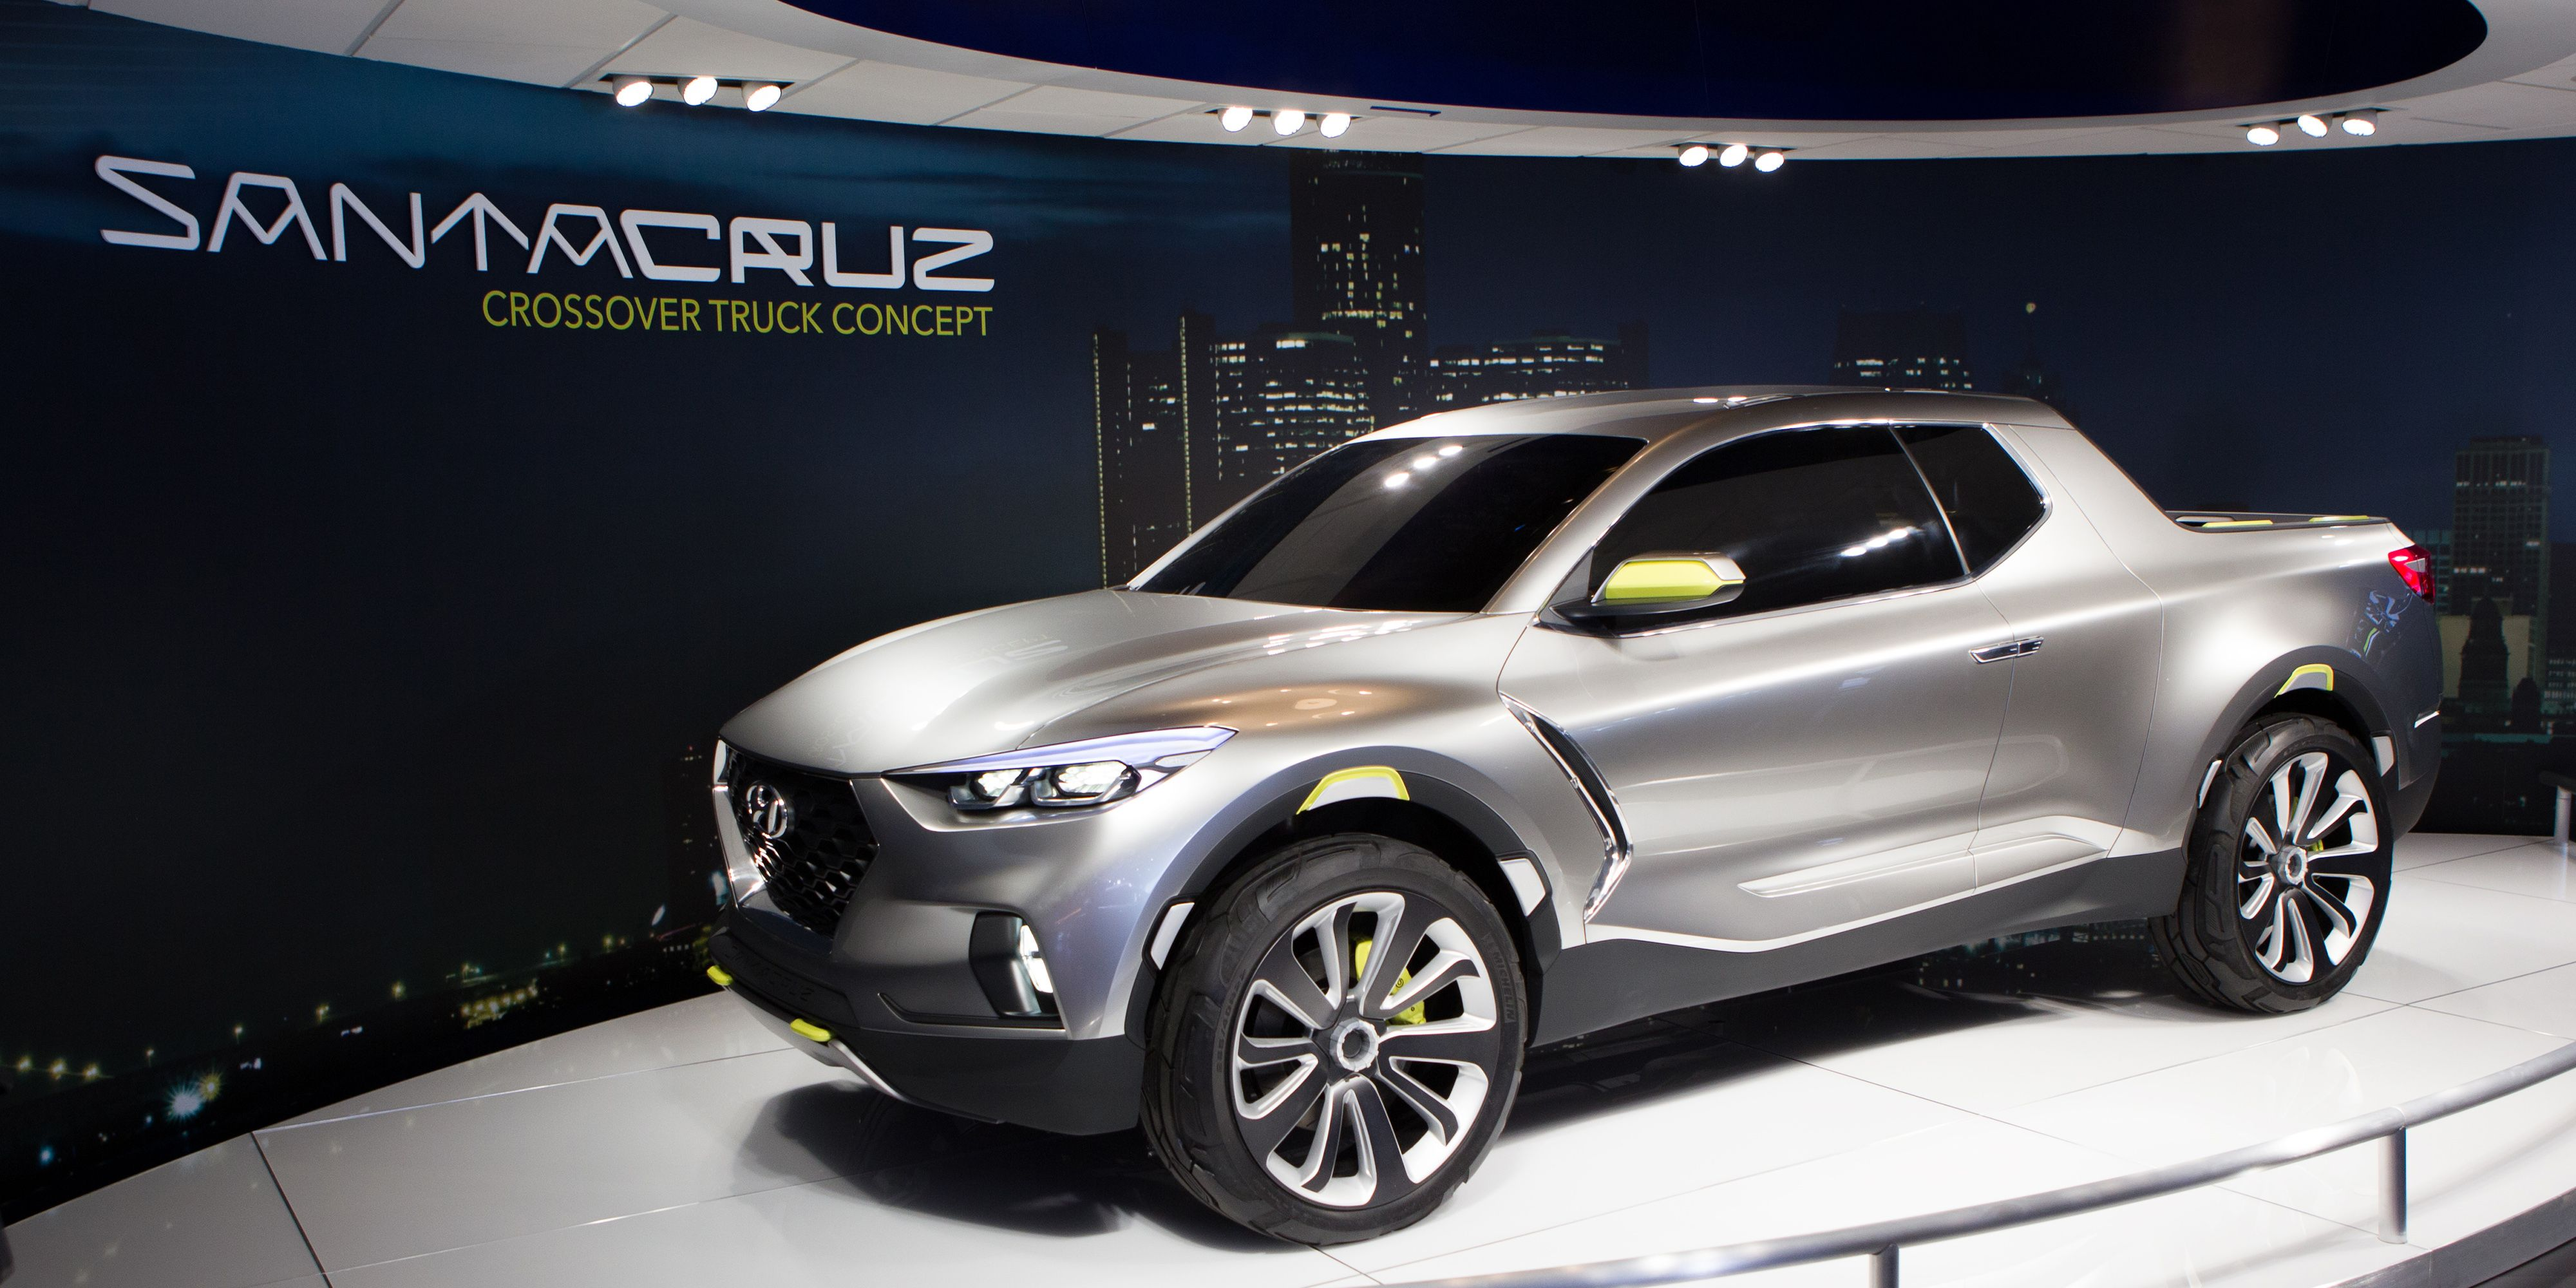 crossover officially h now cruz detroit hyundai show santa trucks concept auto official coming is truck news